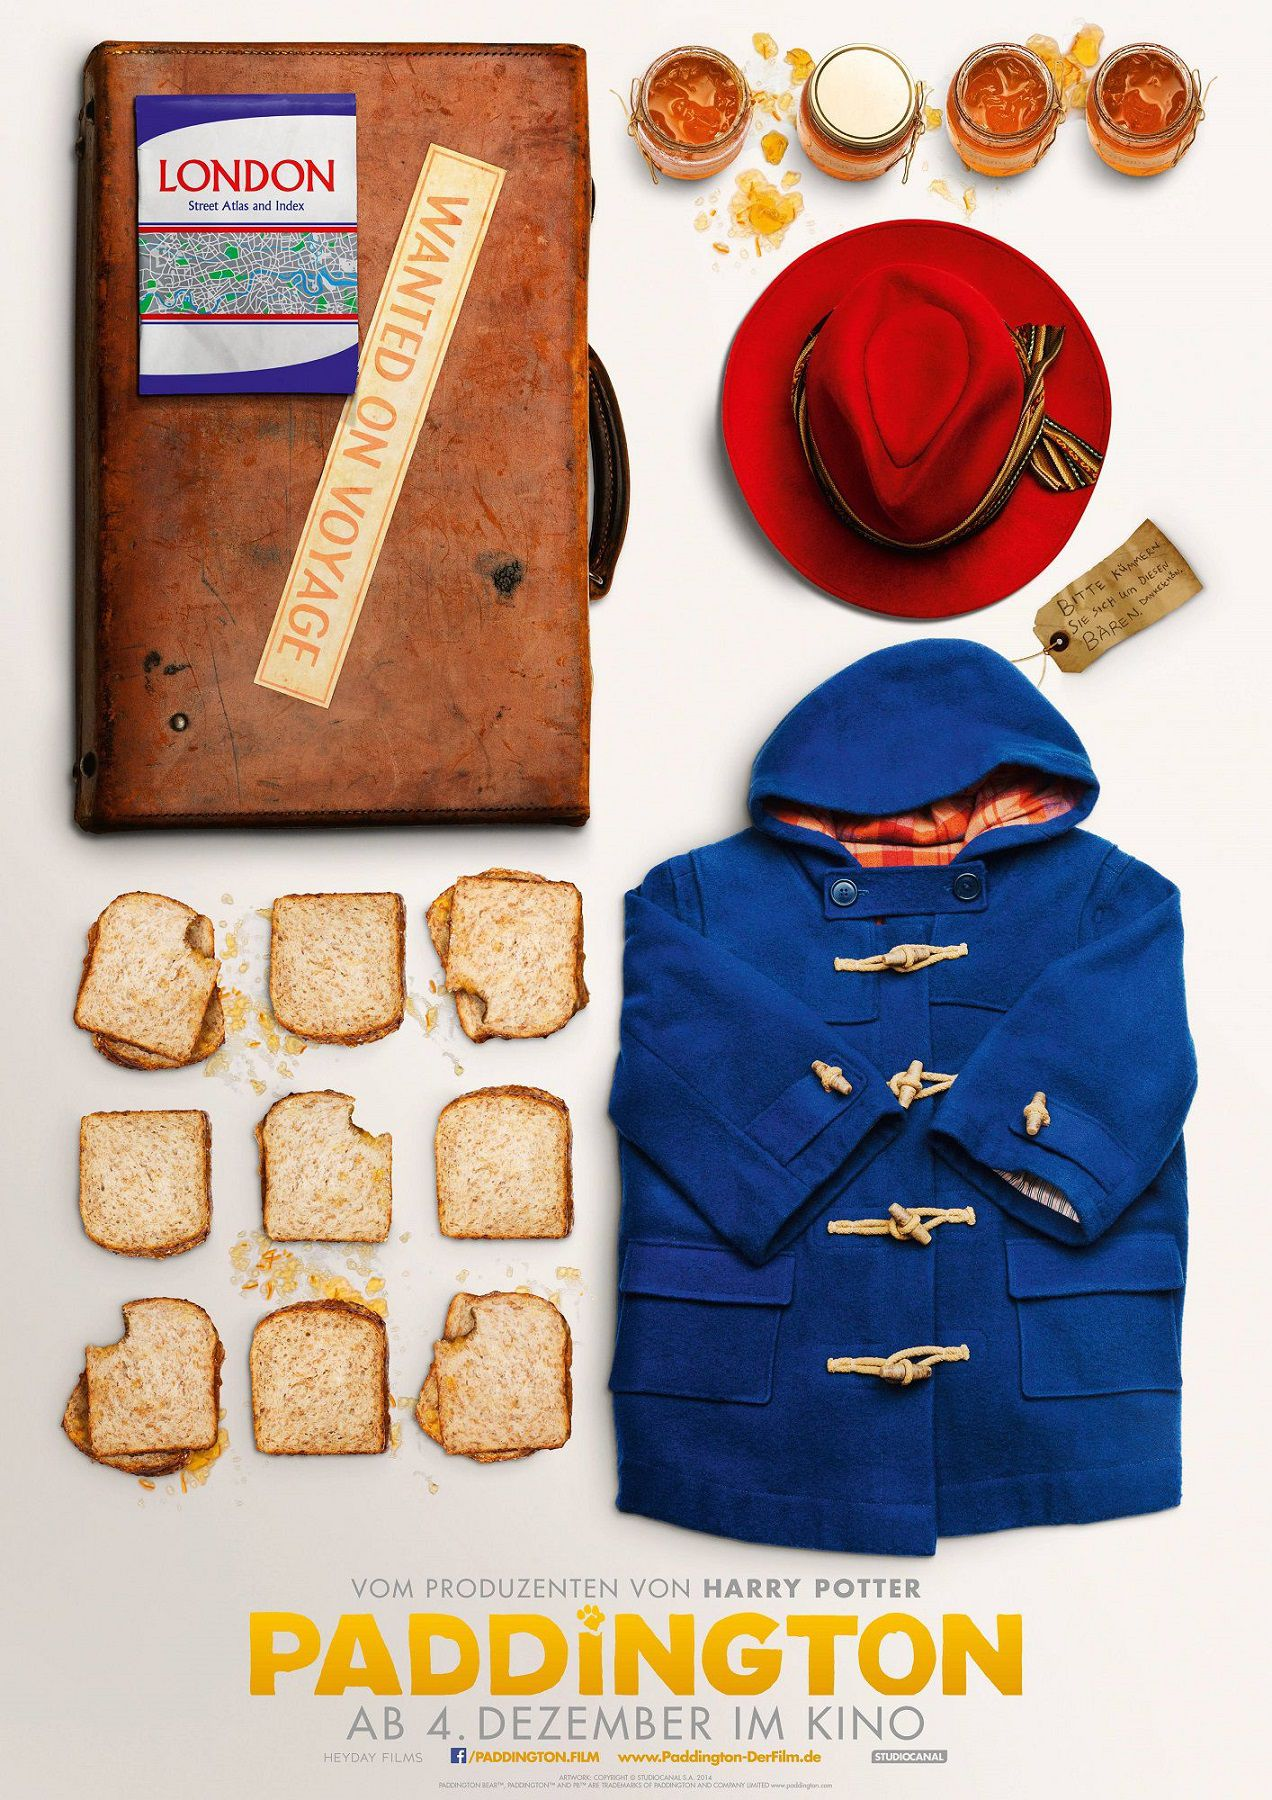 Paddington - bag - dress - honey